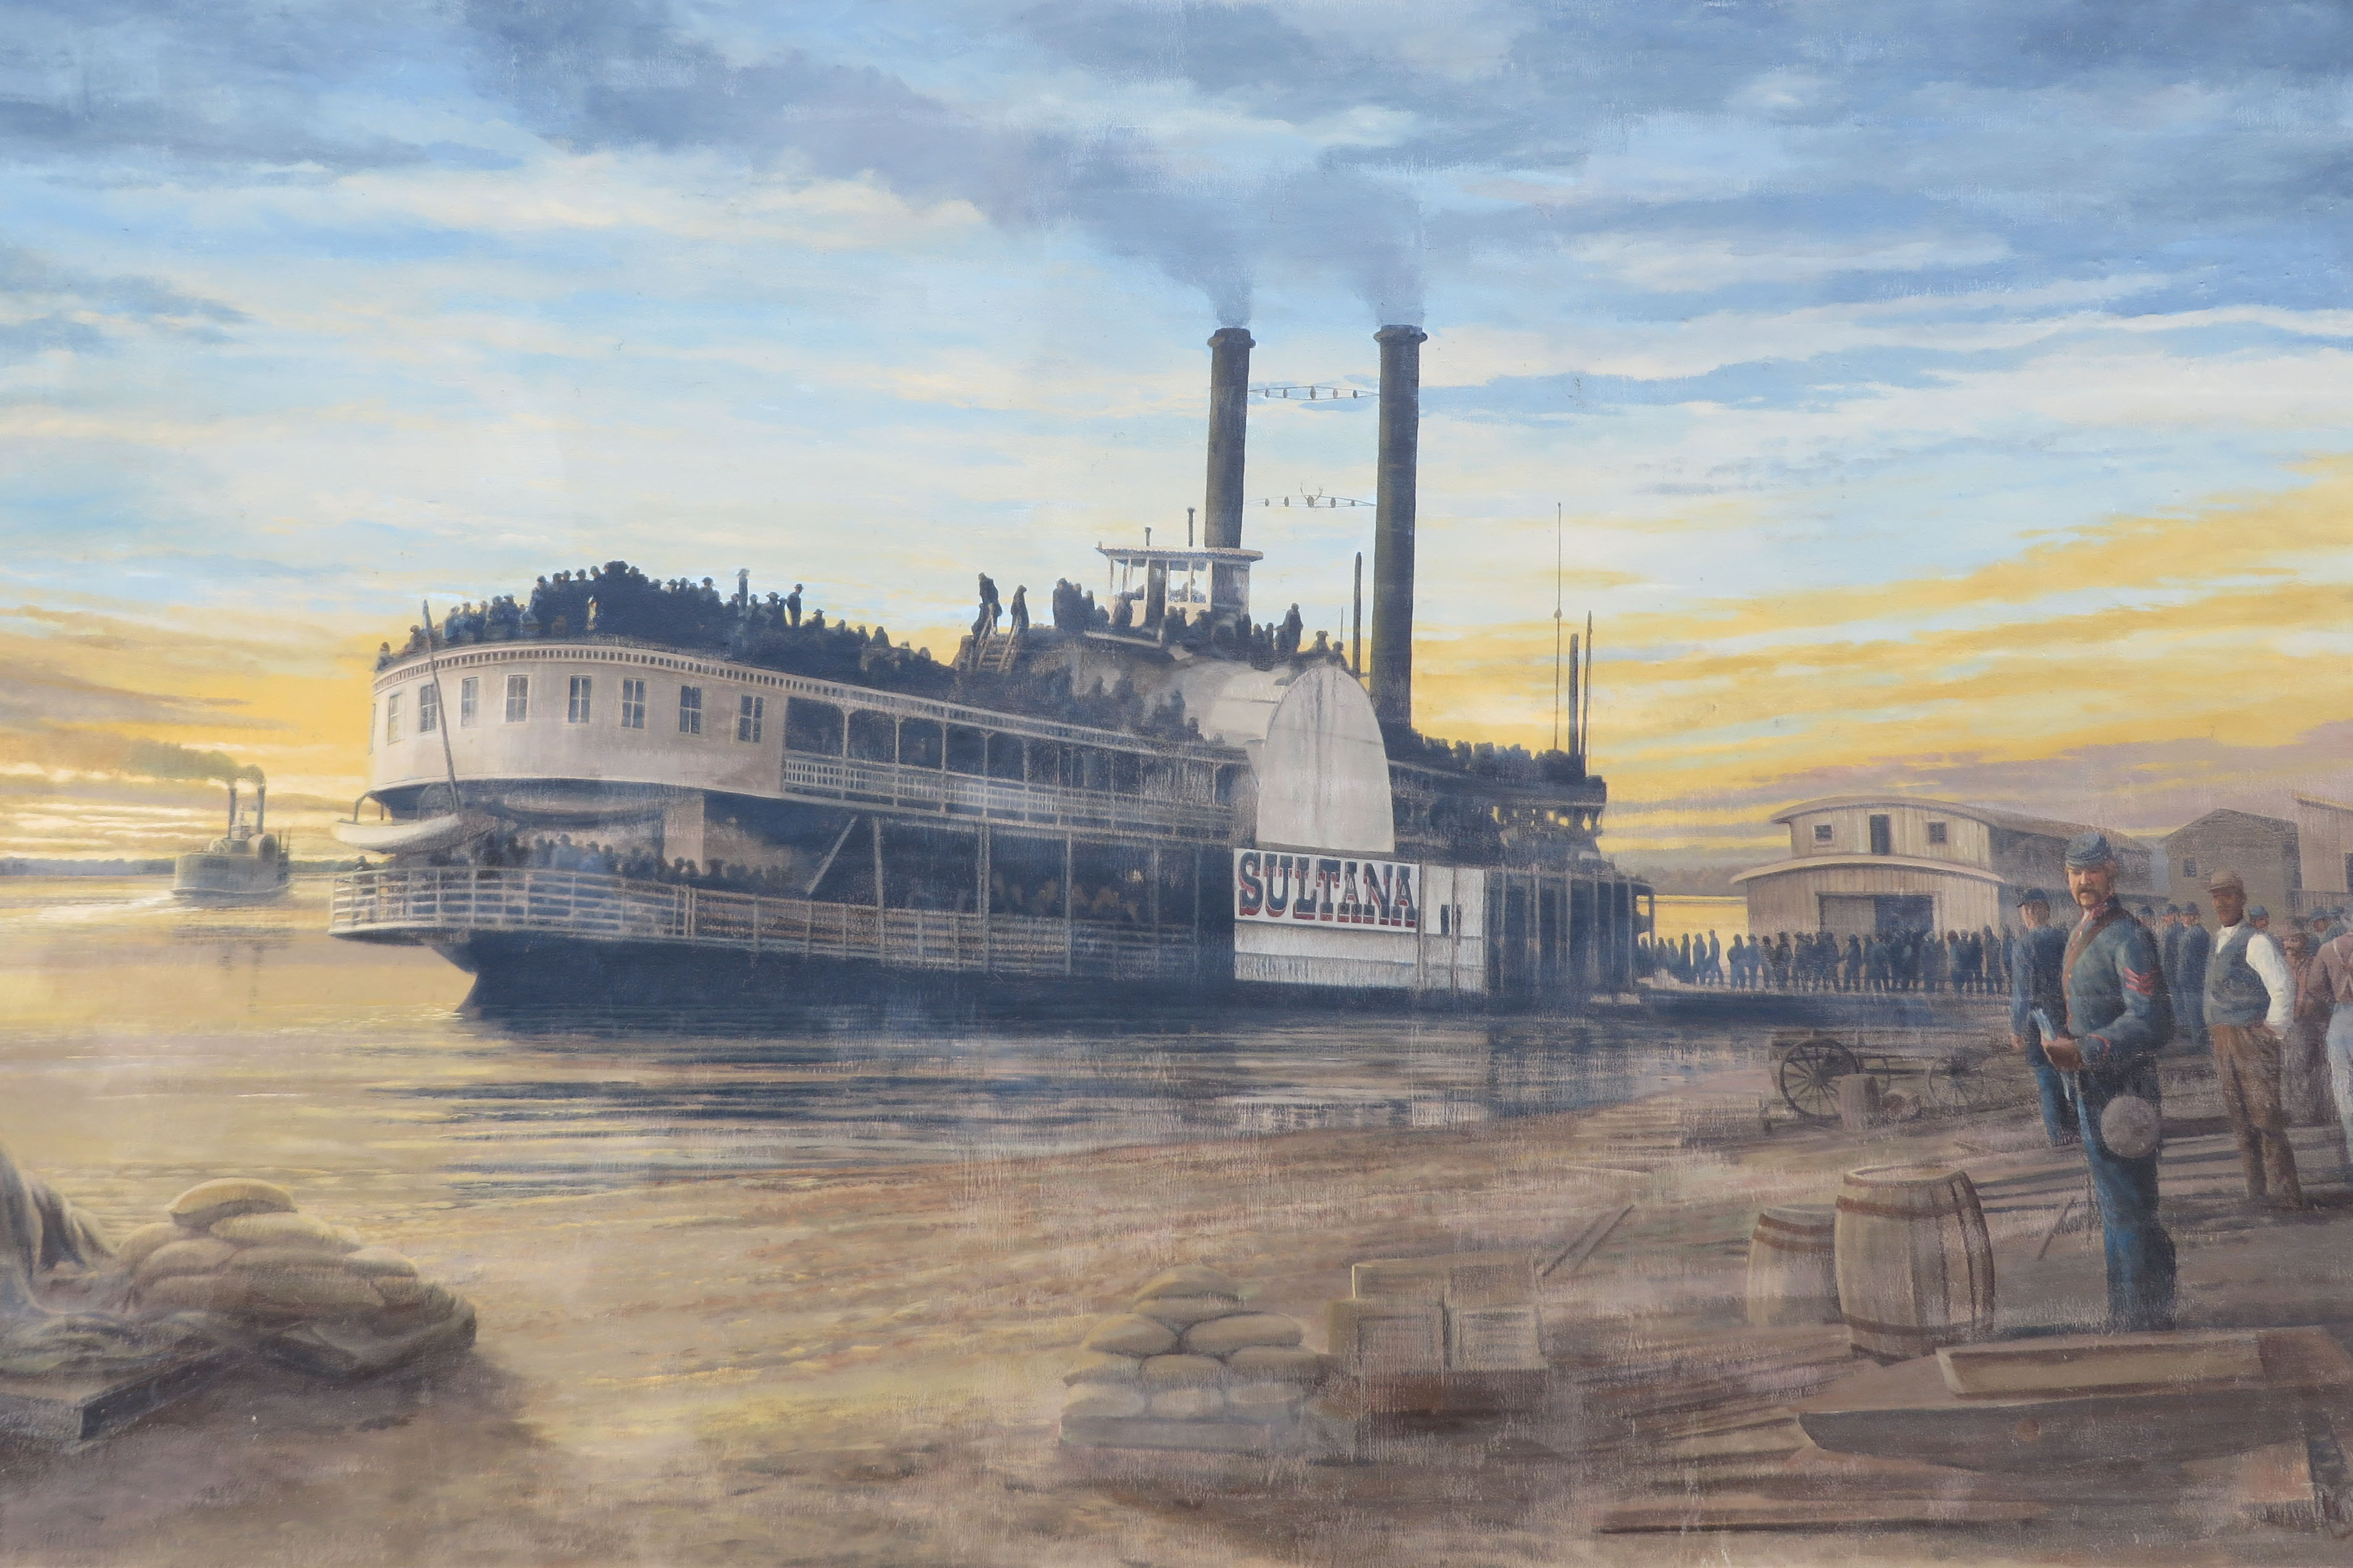 Steamship Sultana – Historical Chronicles Press